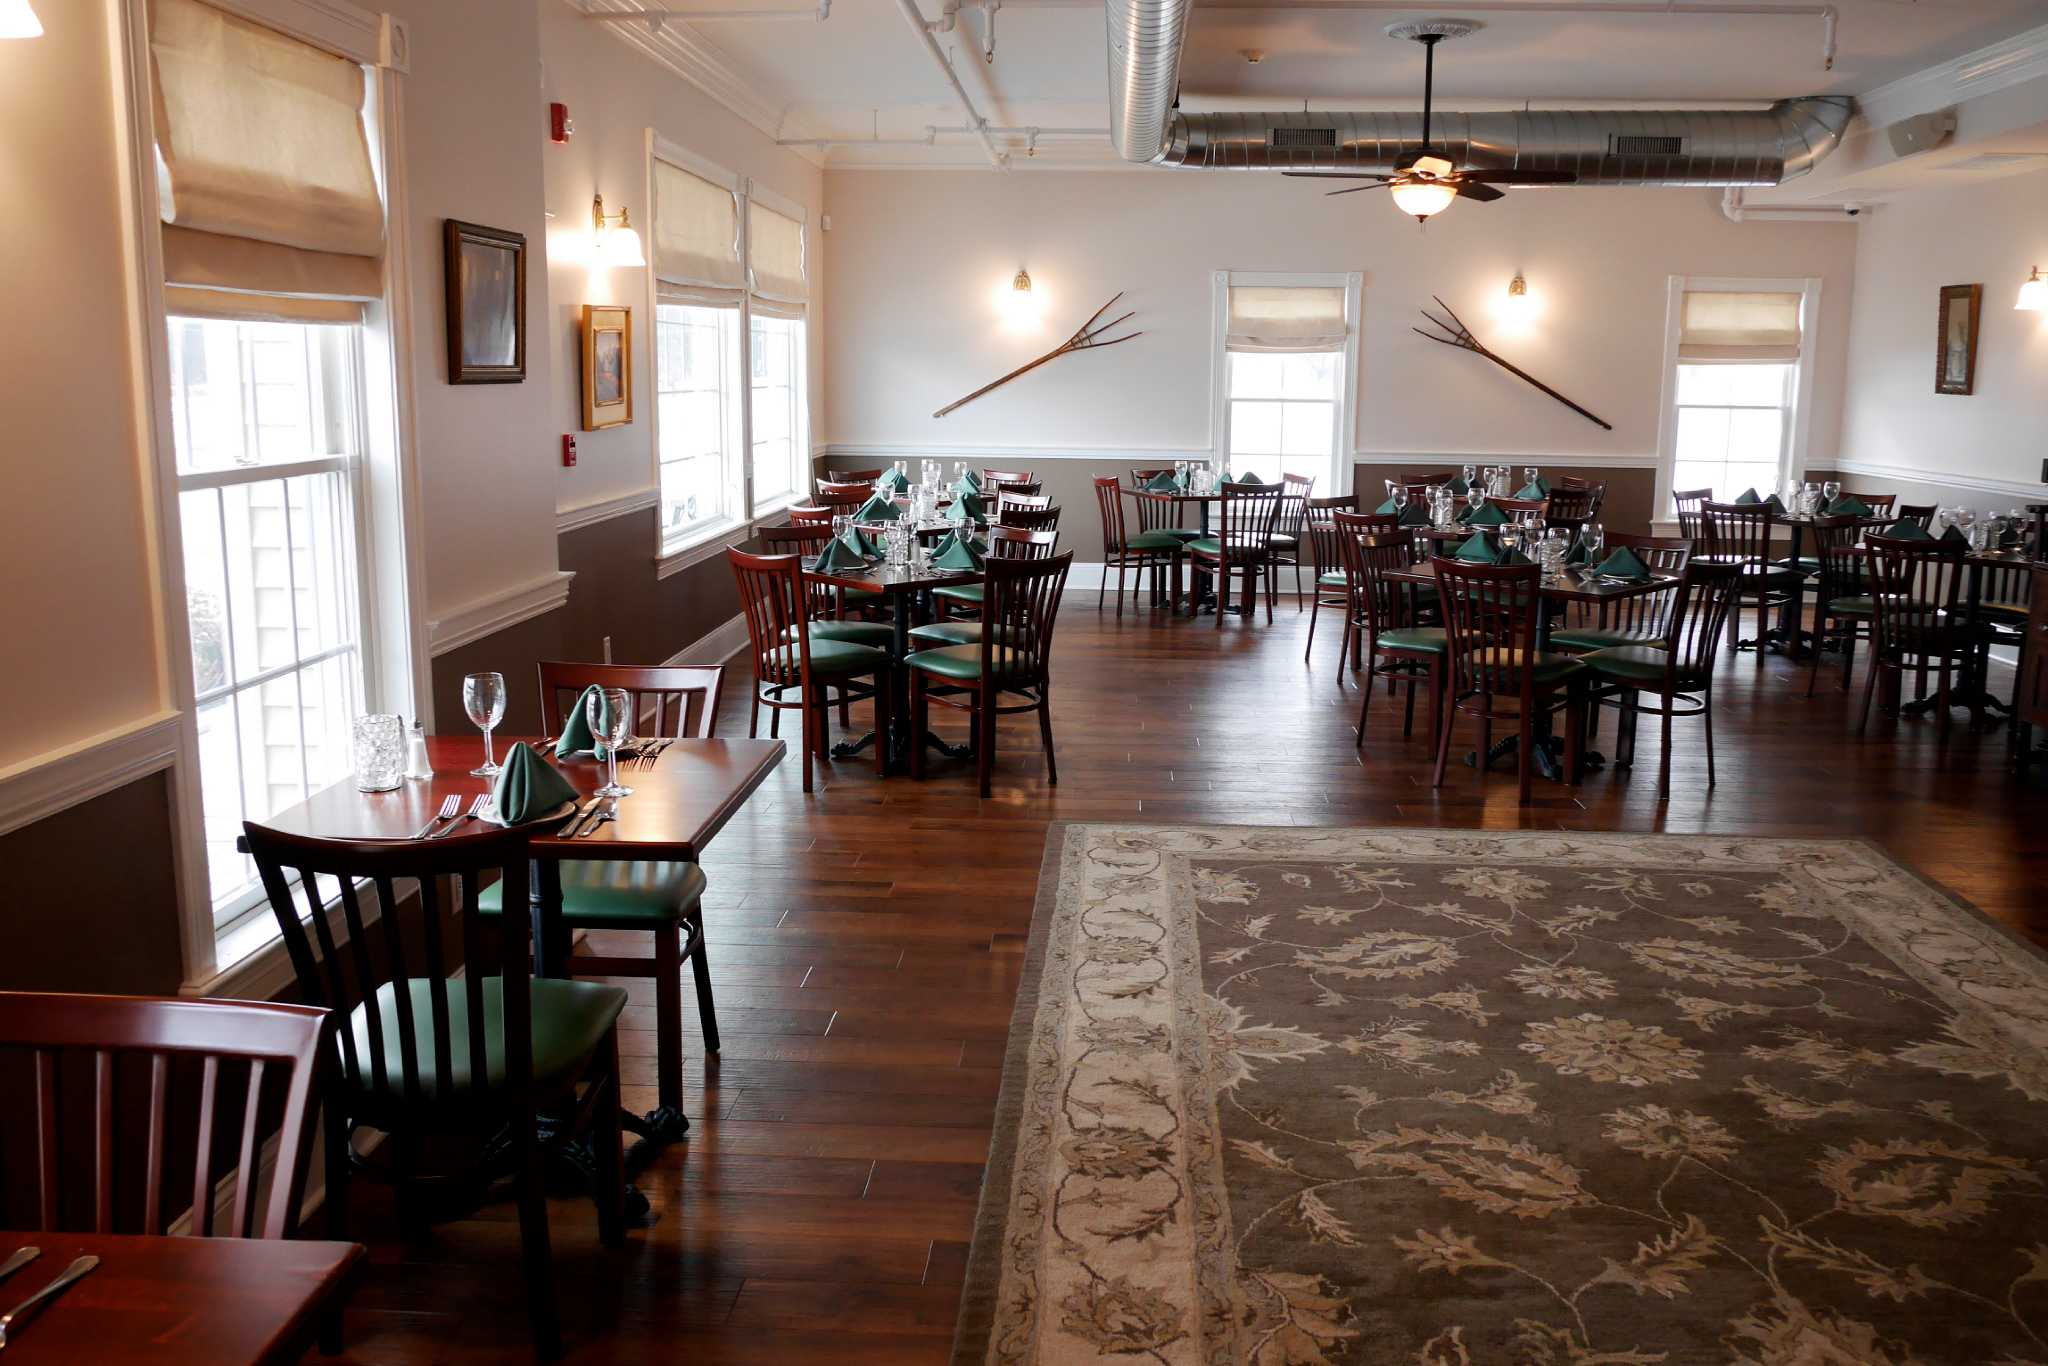 Restaurant Review Westfall Station Caf Averill Park  Times Union